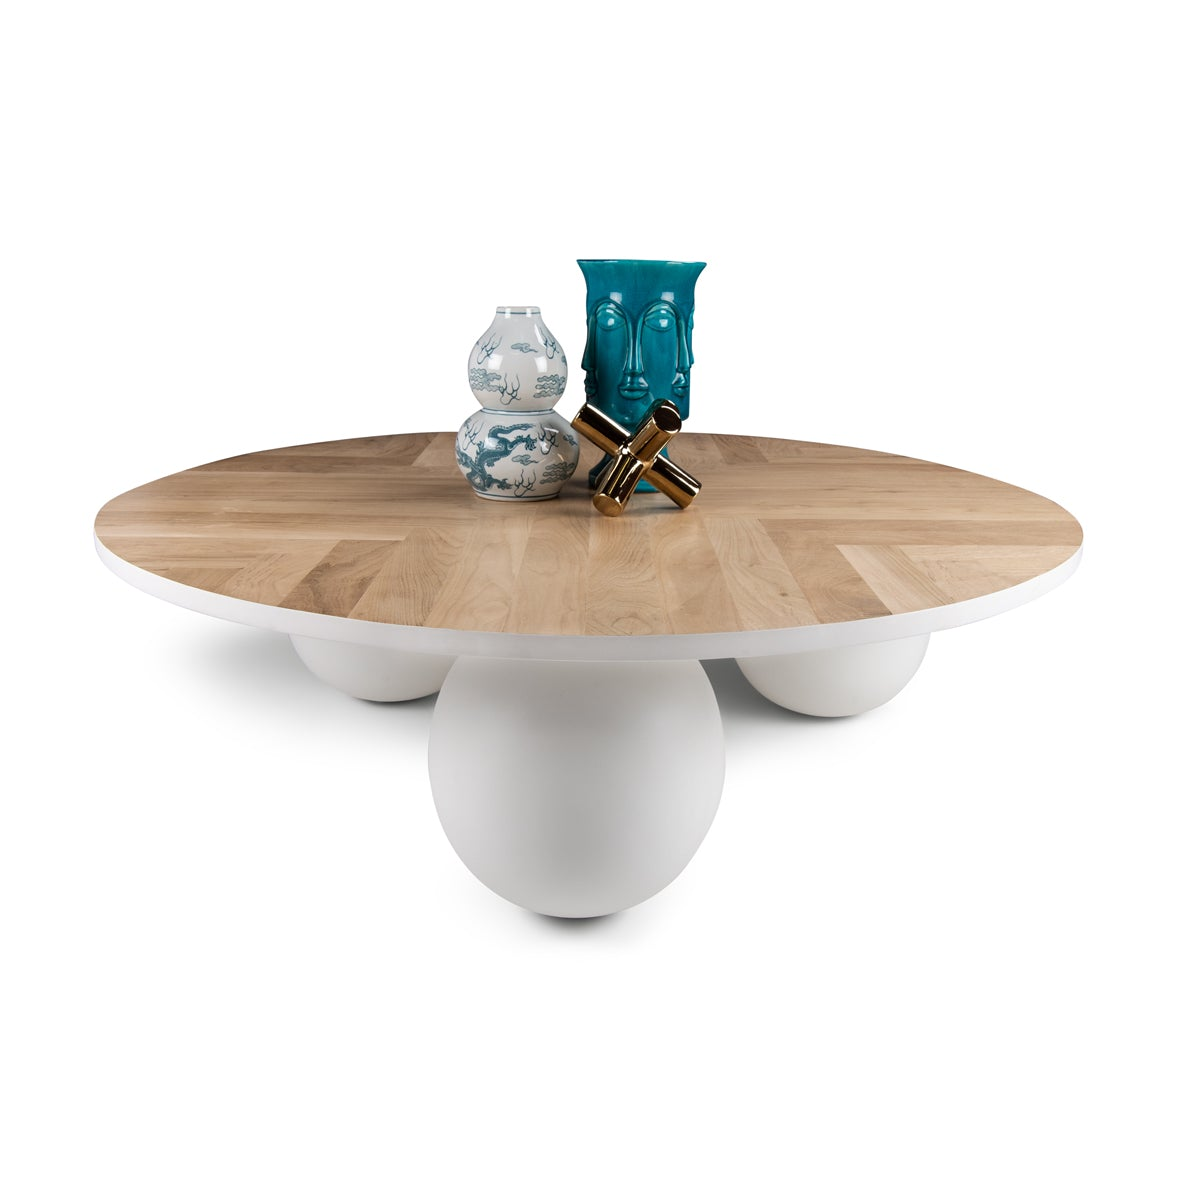 Trayh Coffee Table